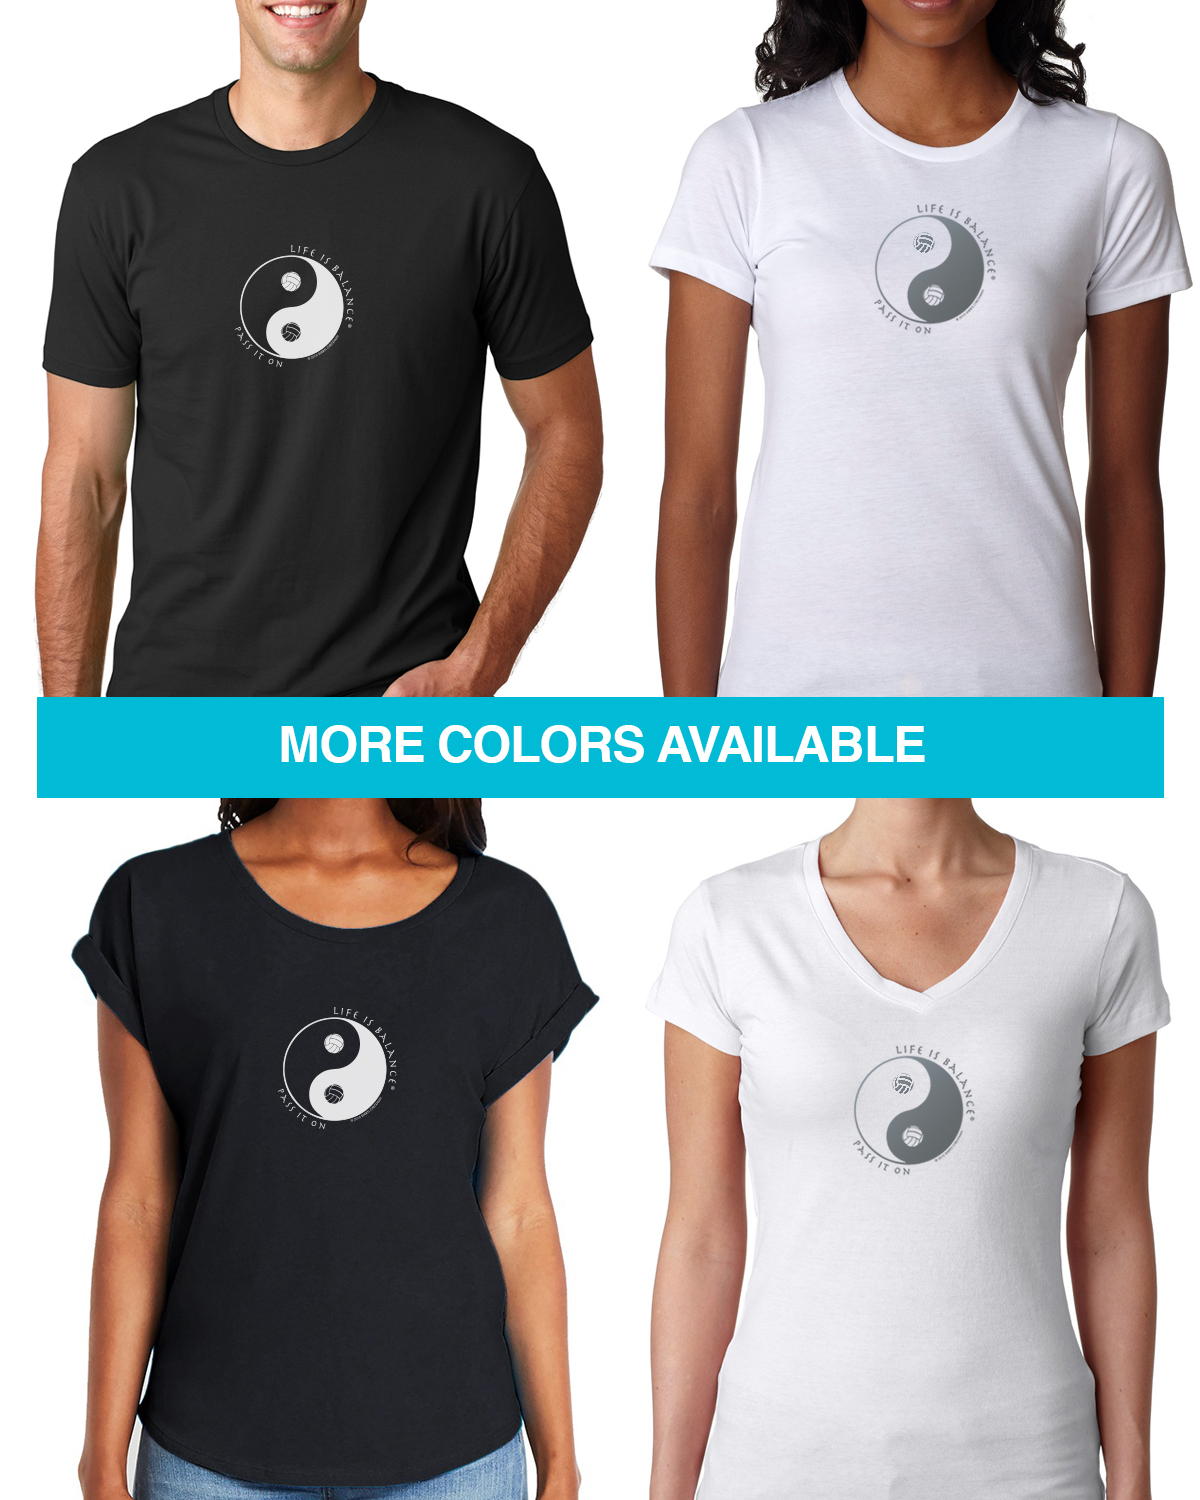 Short sleeve volleyball t-shirts for Men and Women. Women's fitted styles and a unisex style for men and women